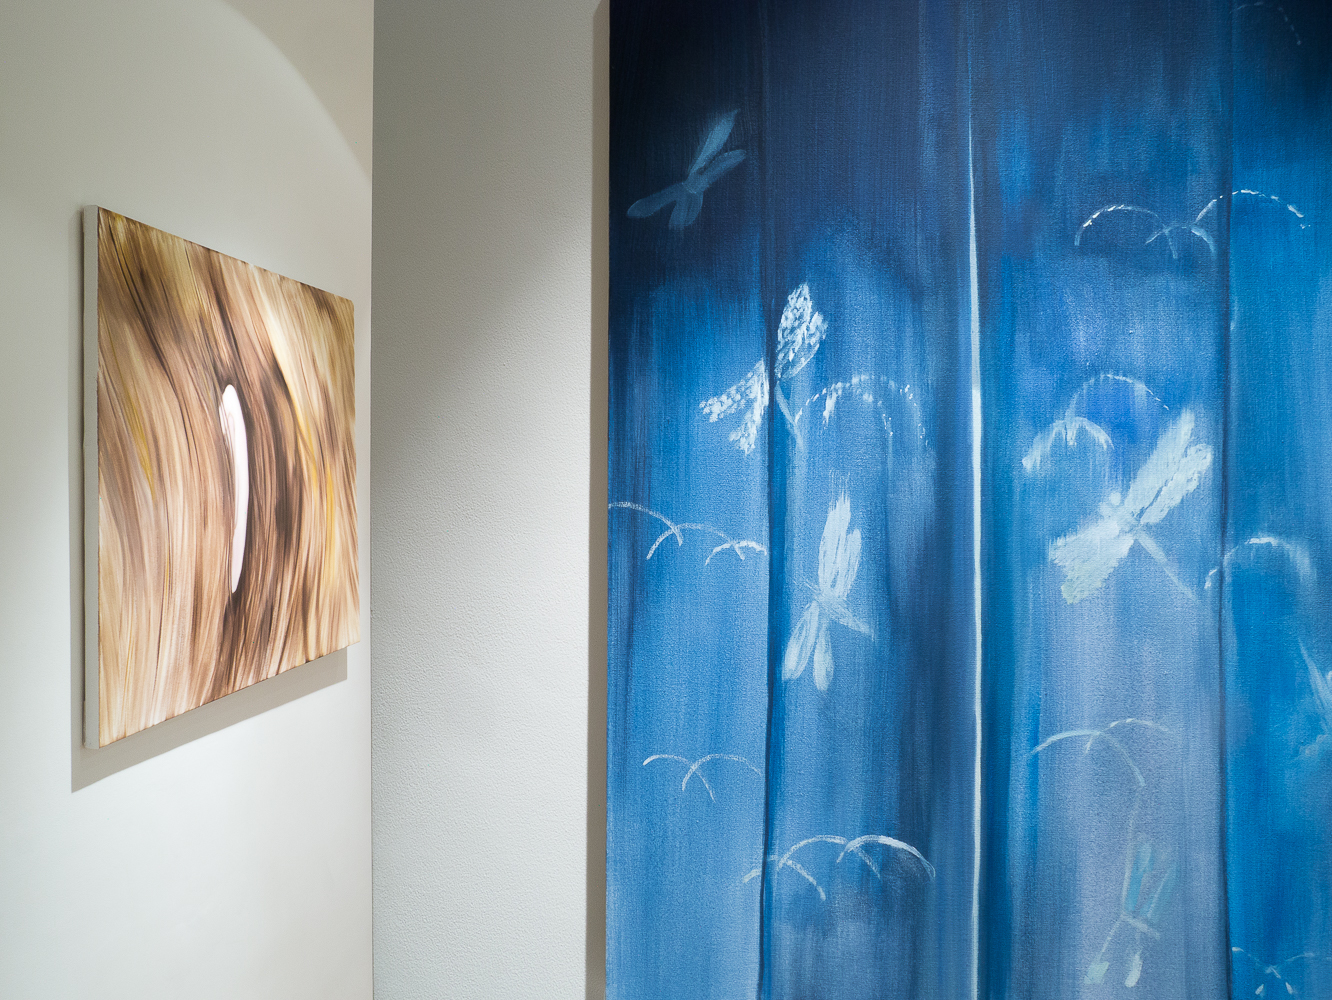 Aglaé Bassens Installation View from her Solo show Front Parting curated by Joe Madeira at CABIN gallery-1.jpg